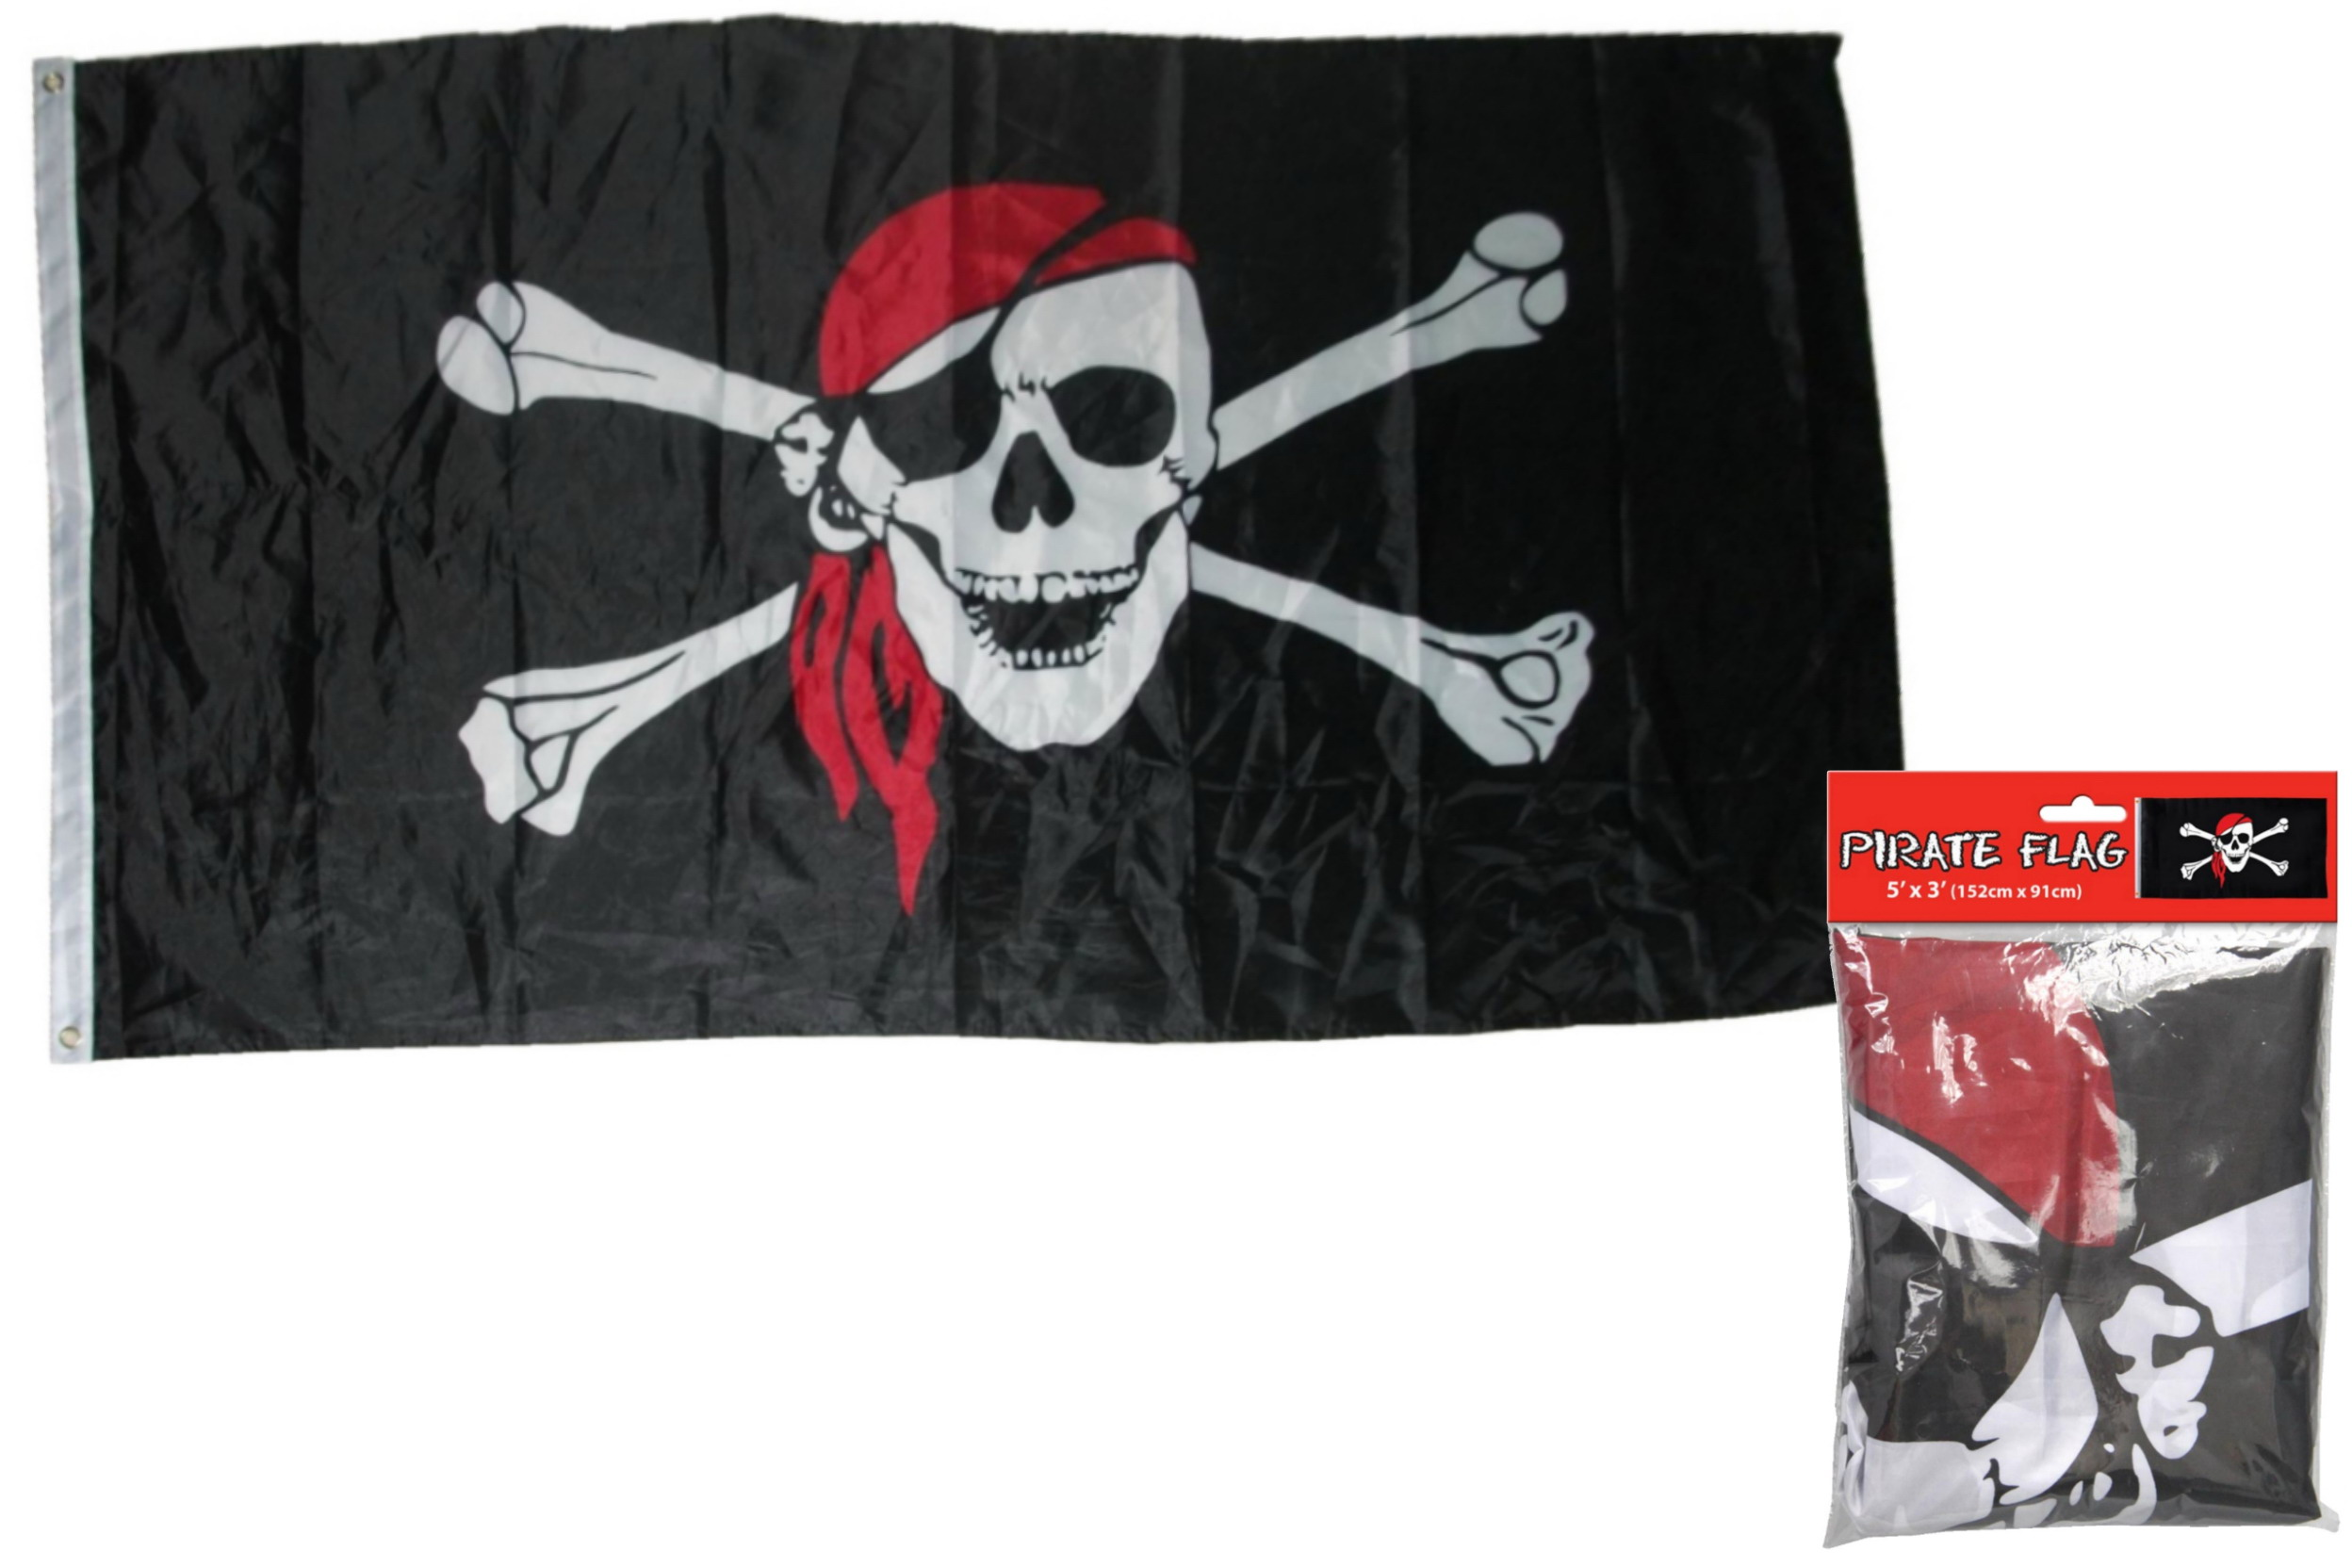 5' x 3' Pirate Flag